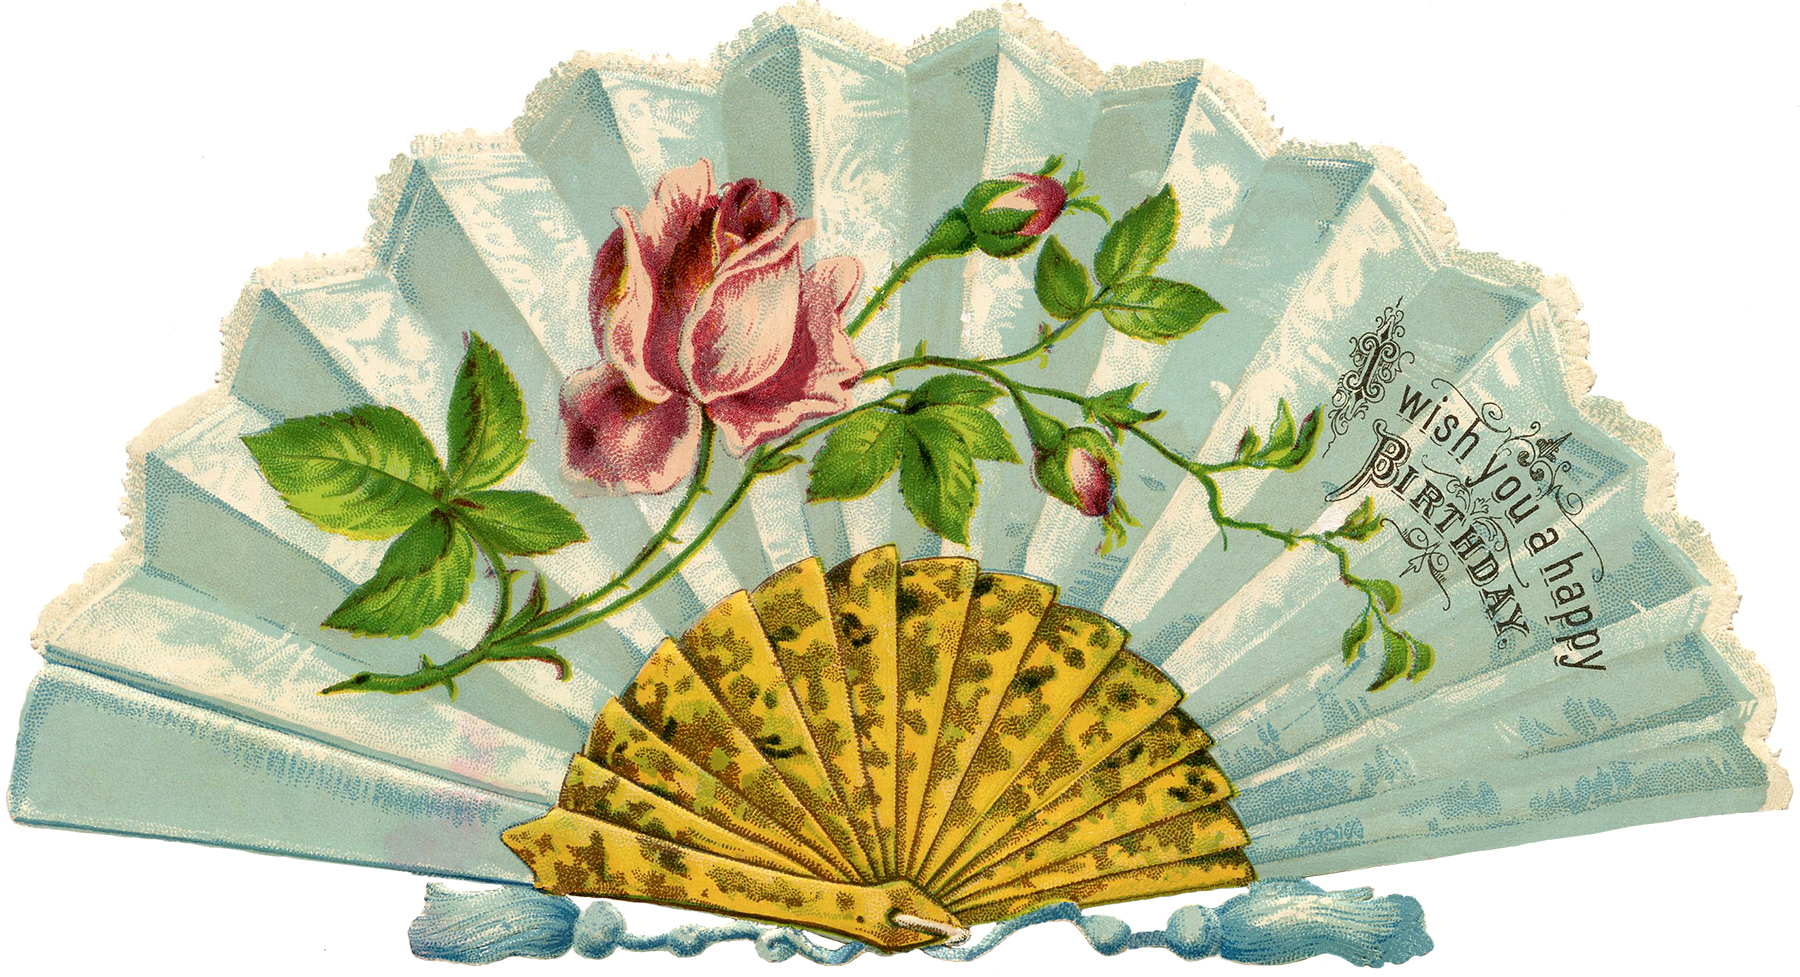 Fans clipart victorian Pretty! Fan Image Victorian The